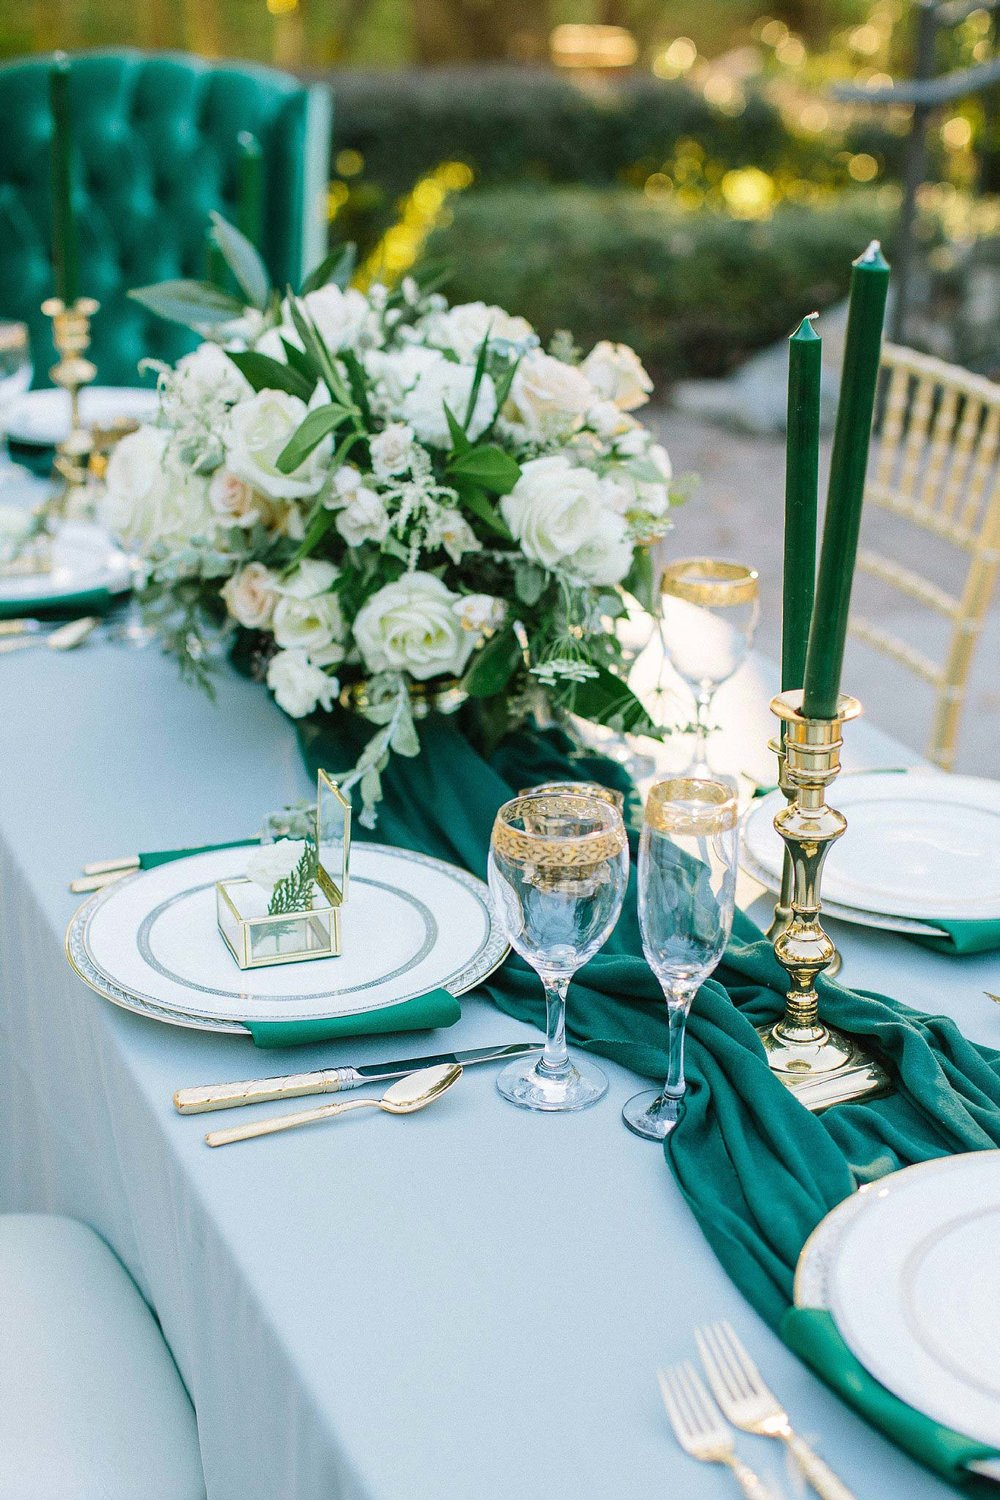 Greenery_Pantone-Color-of-the-Year-2017_Mansfield-TX_Aristide-Mansfield_Fort-Worth-and-Dallas-Wedding-Planner-and-Designer_Shannon-Rose-Events_0022.jpg